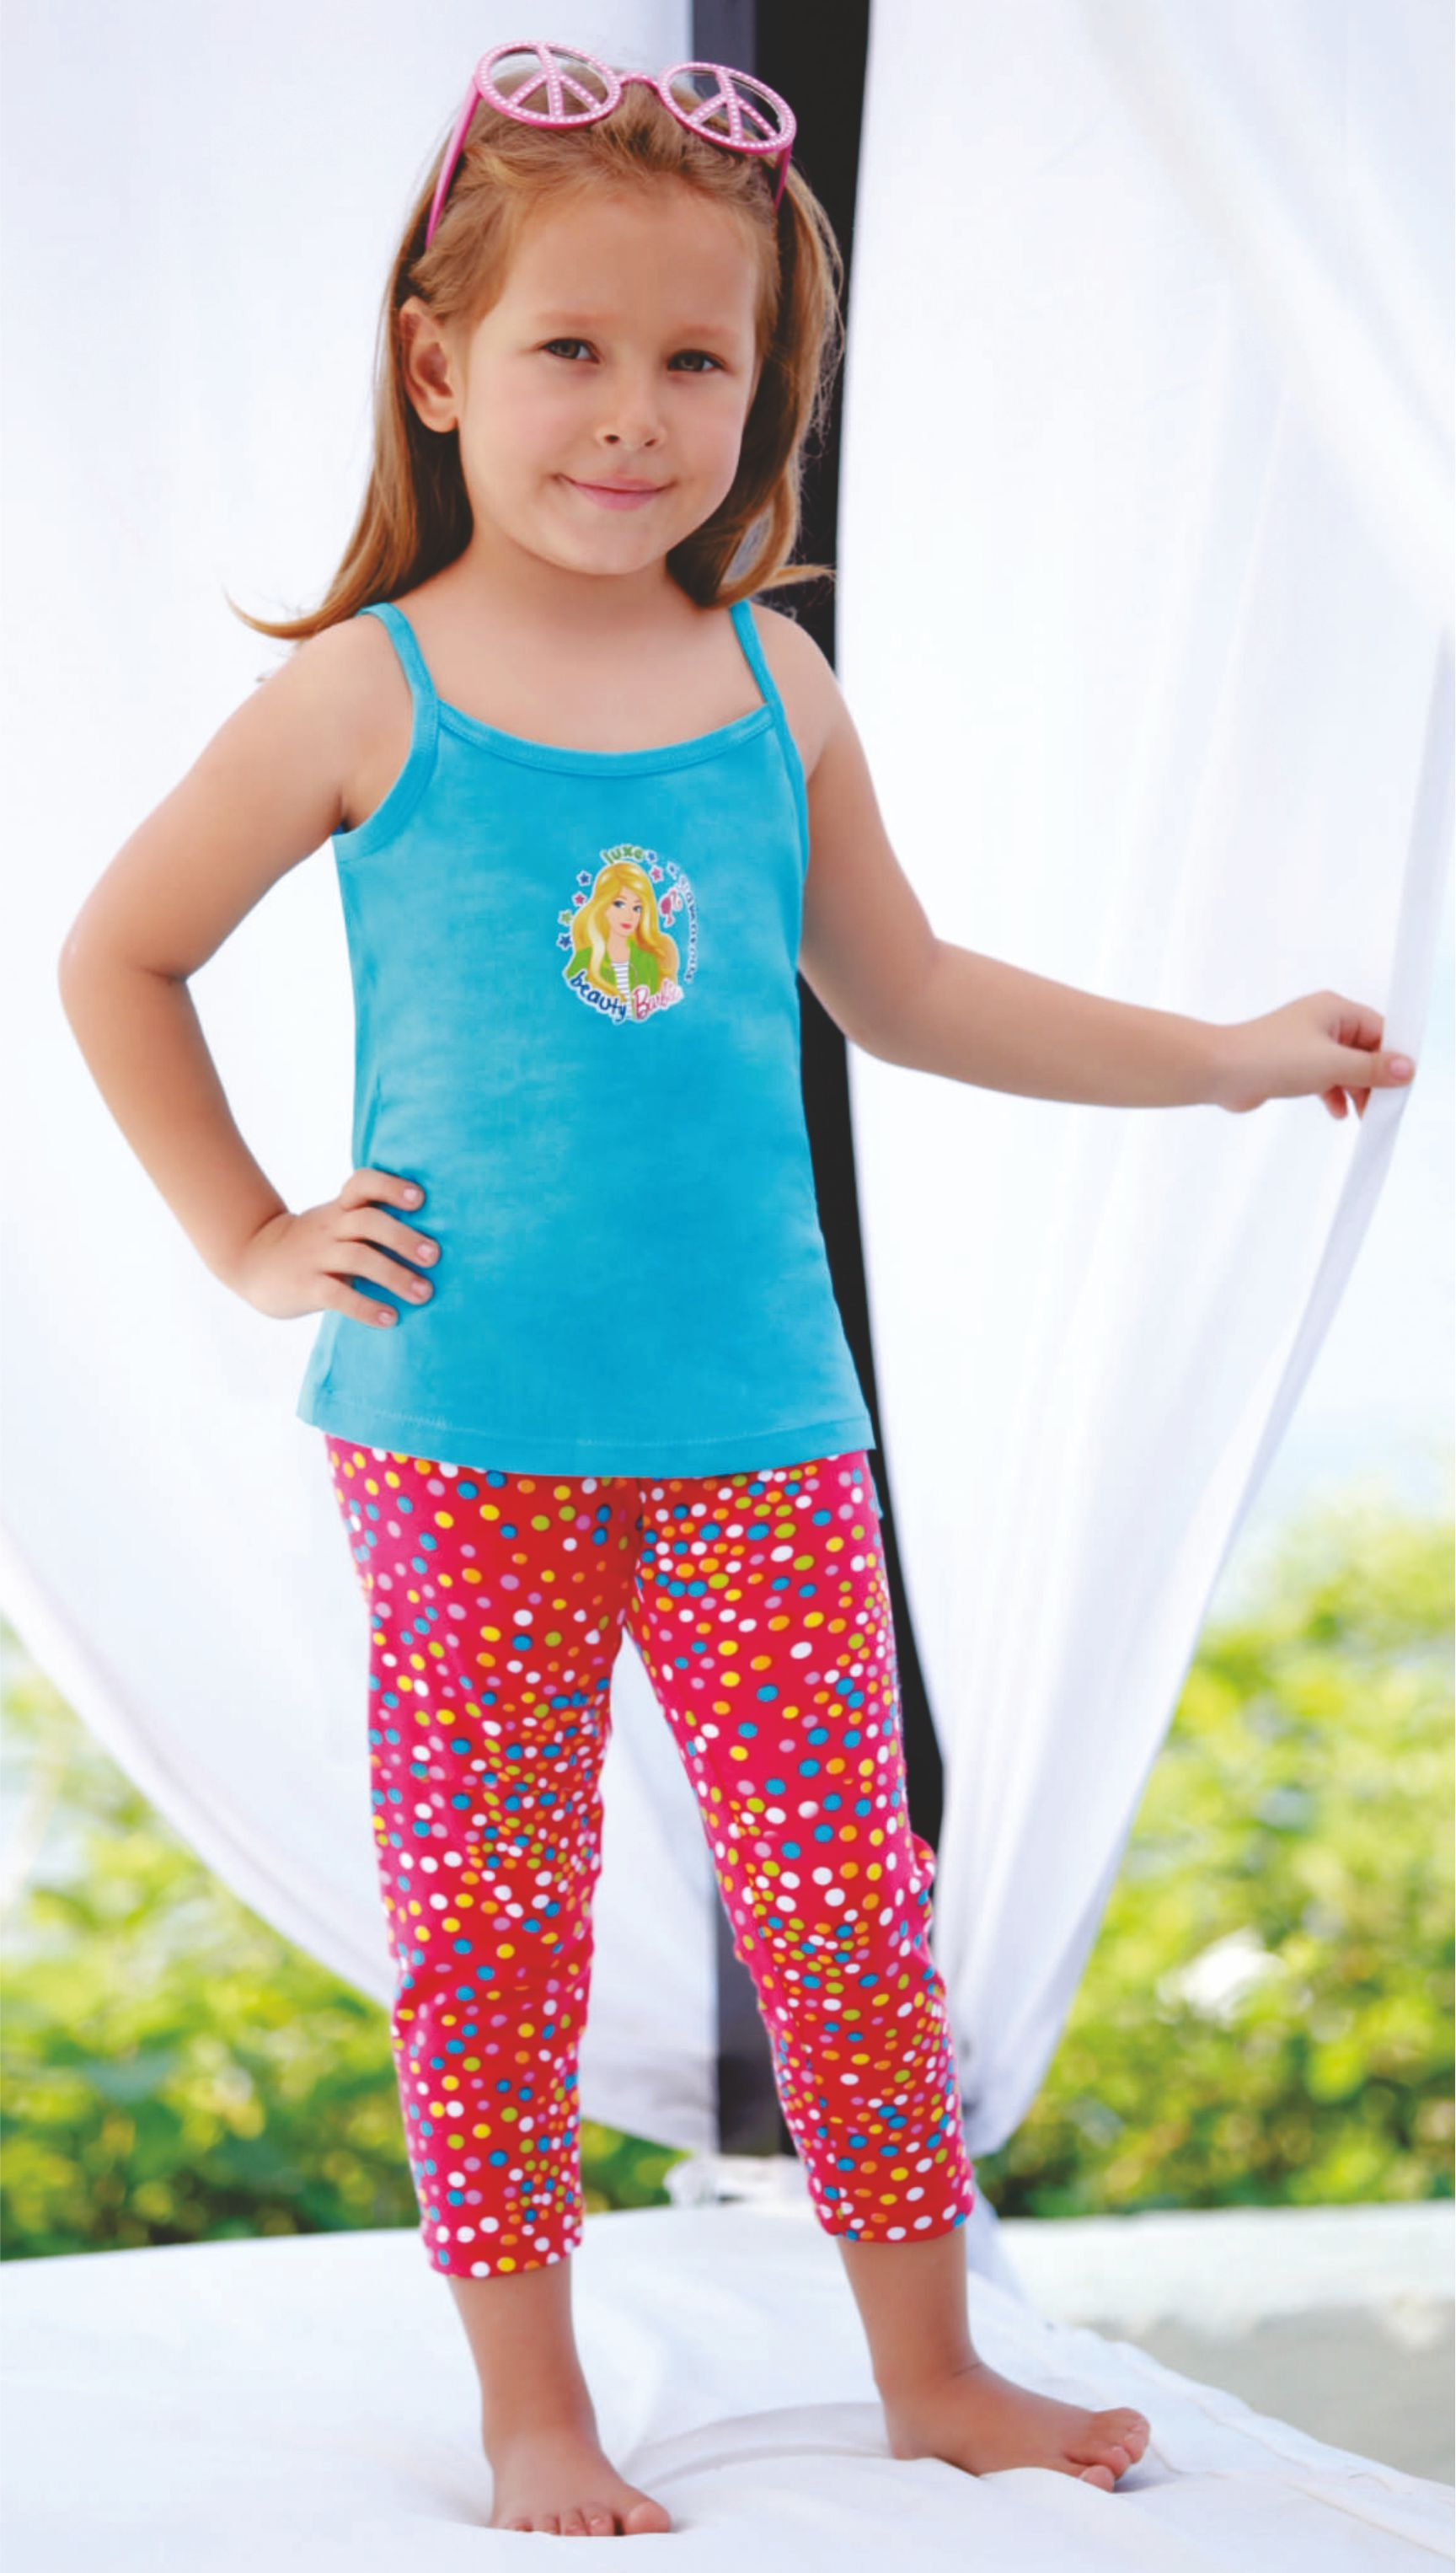 Stylish leggings from the house of Bodycare Kids